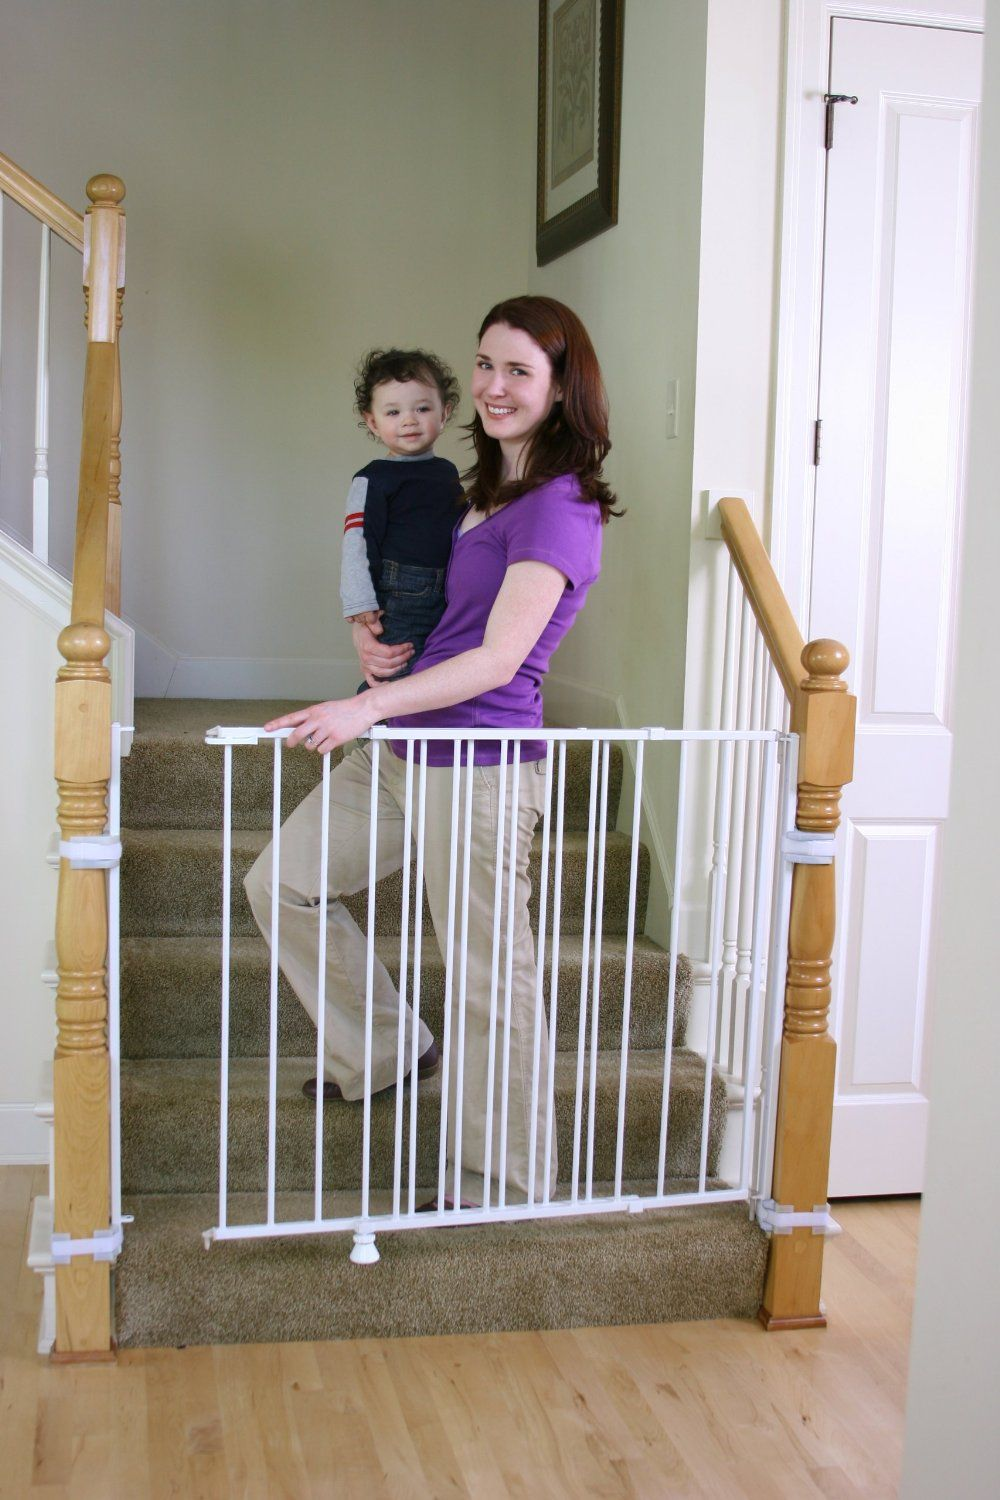 Safety Gates Are Designed To Keep The Child Safe Click To Tweet Baby Safety Gates Are Designed For Al Baby Gate For Stairs Baby Safety Gate Top Of Stairs Gate